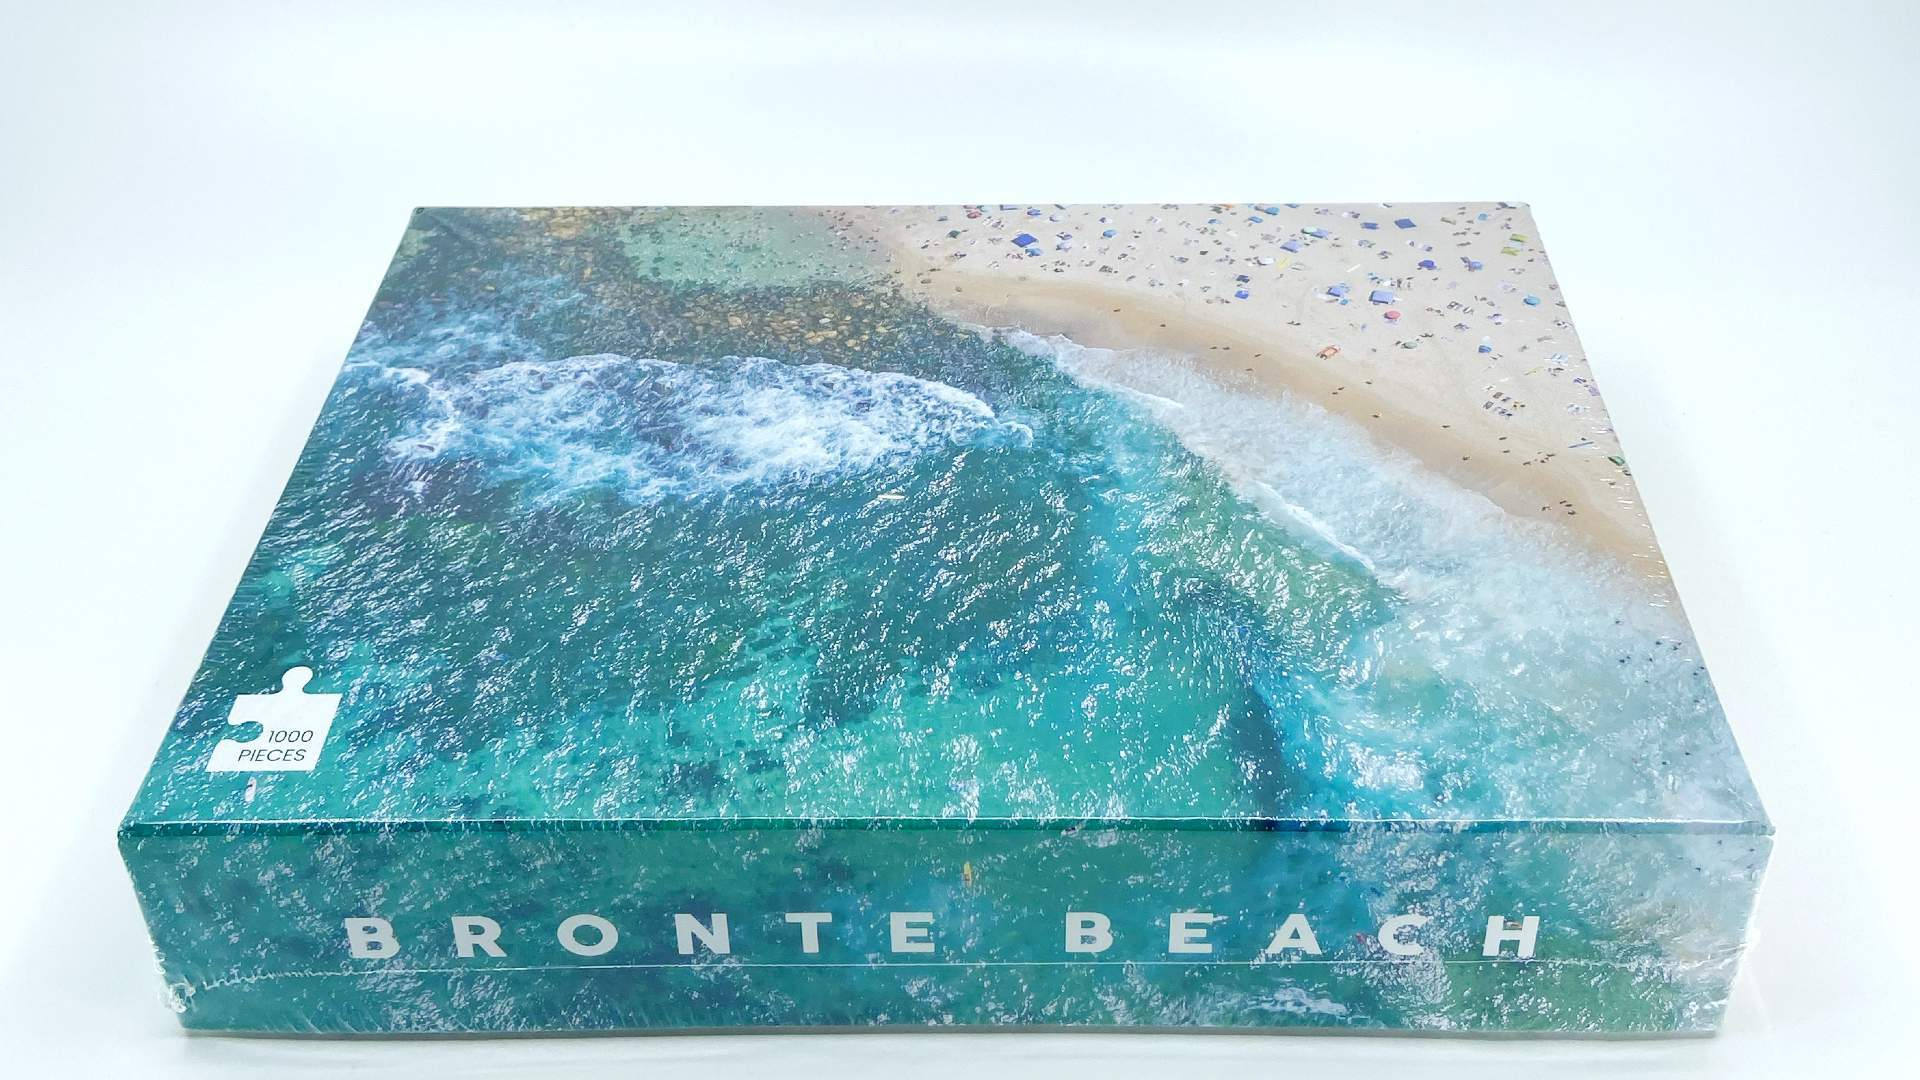 Sydney-Based Salty Gallery Is Turning Its Photos of NSW Beaches Into Jigsaw Puzzles